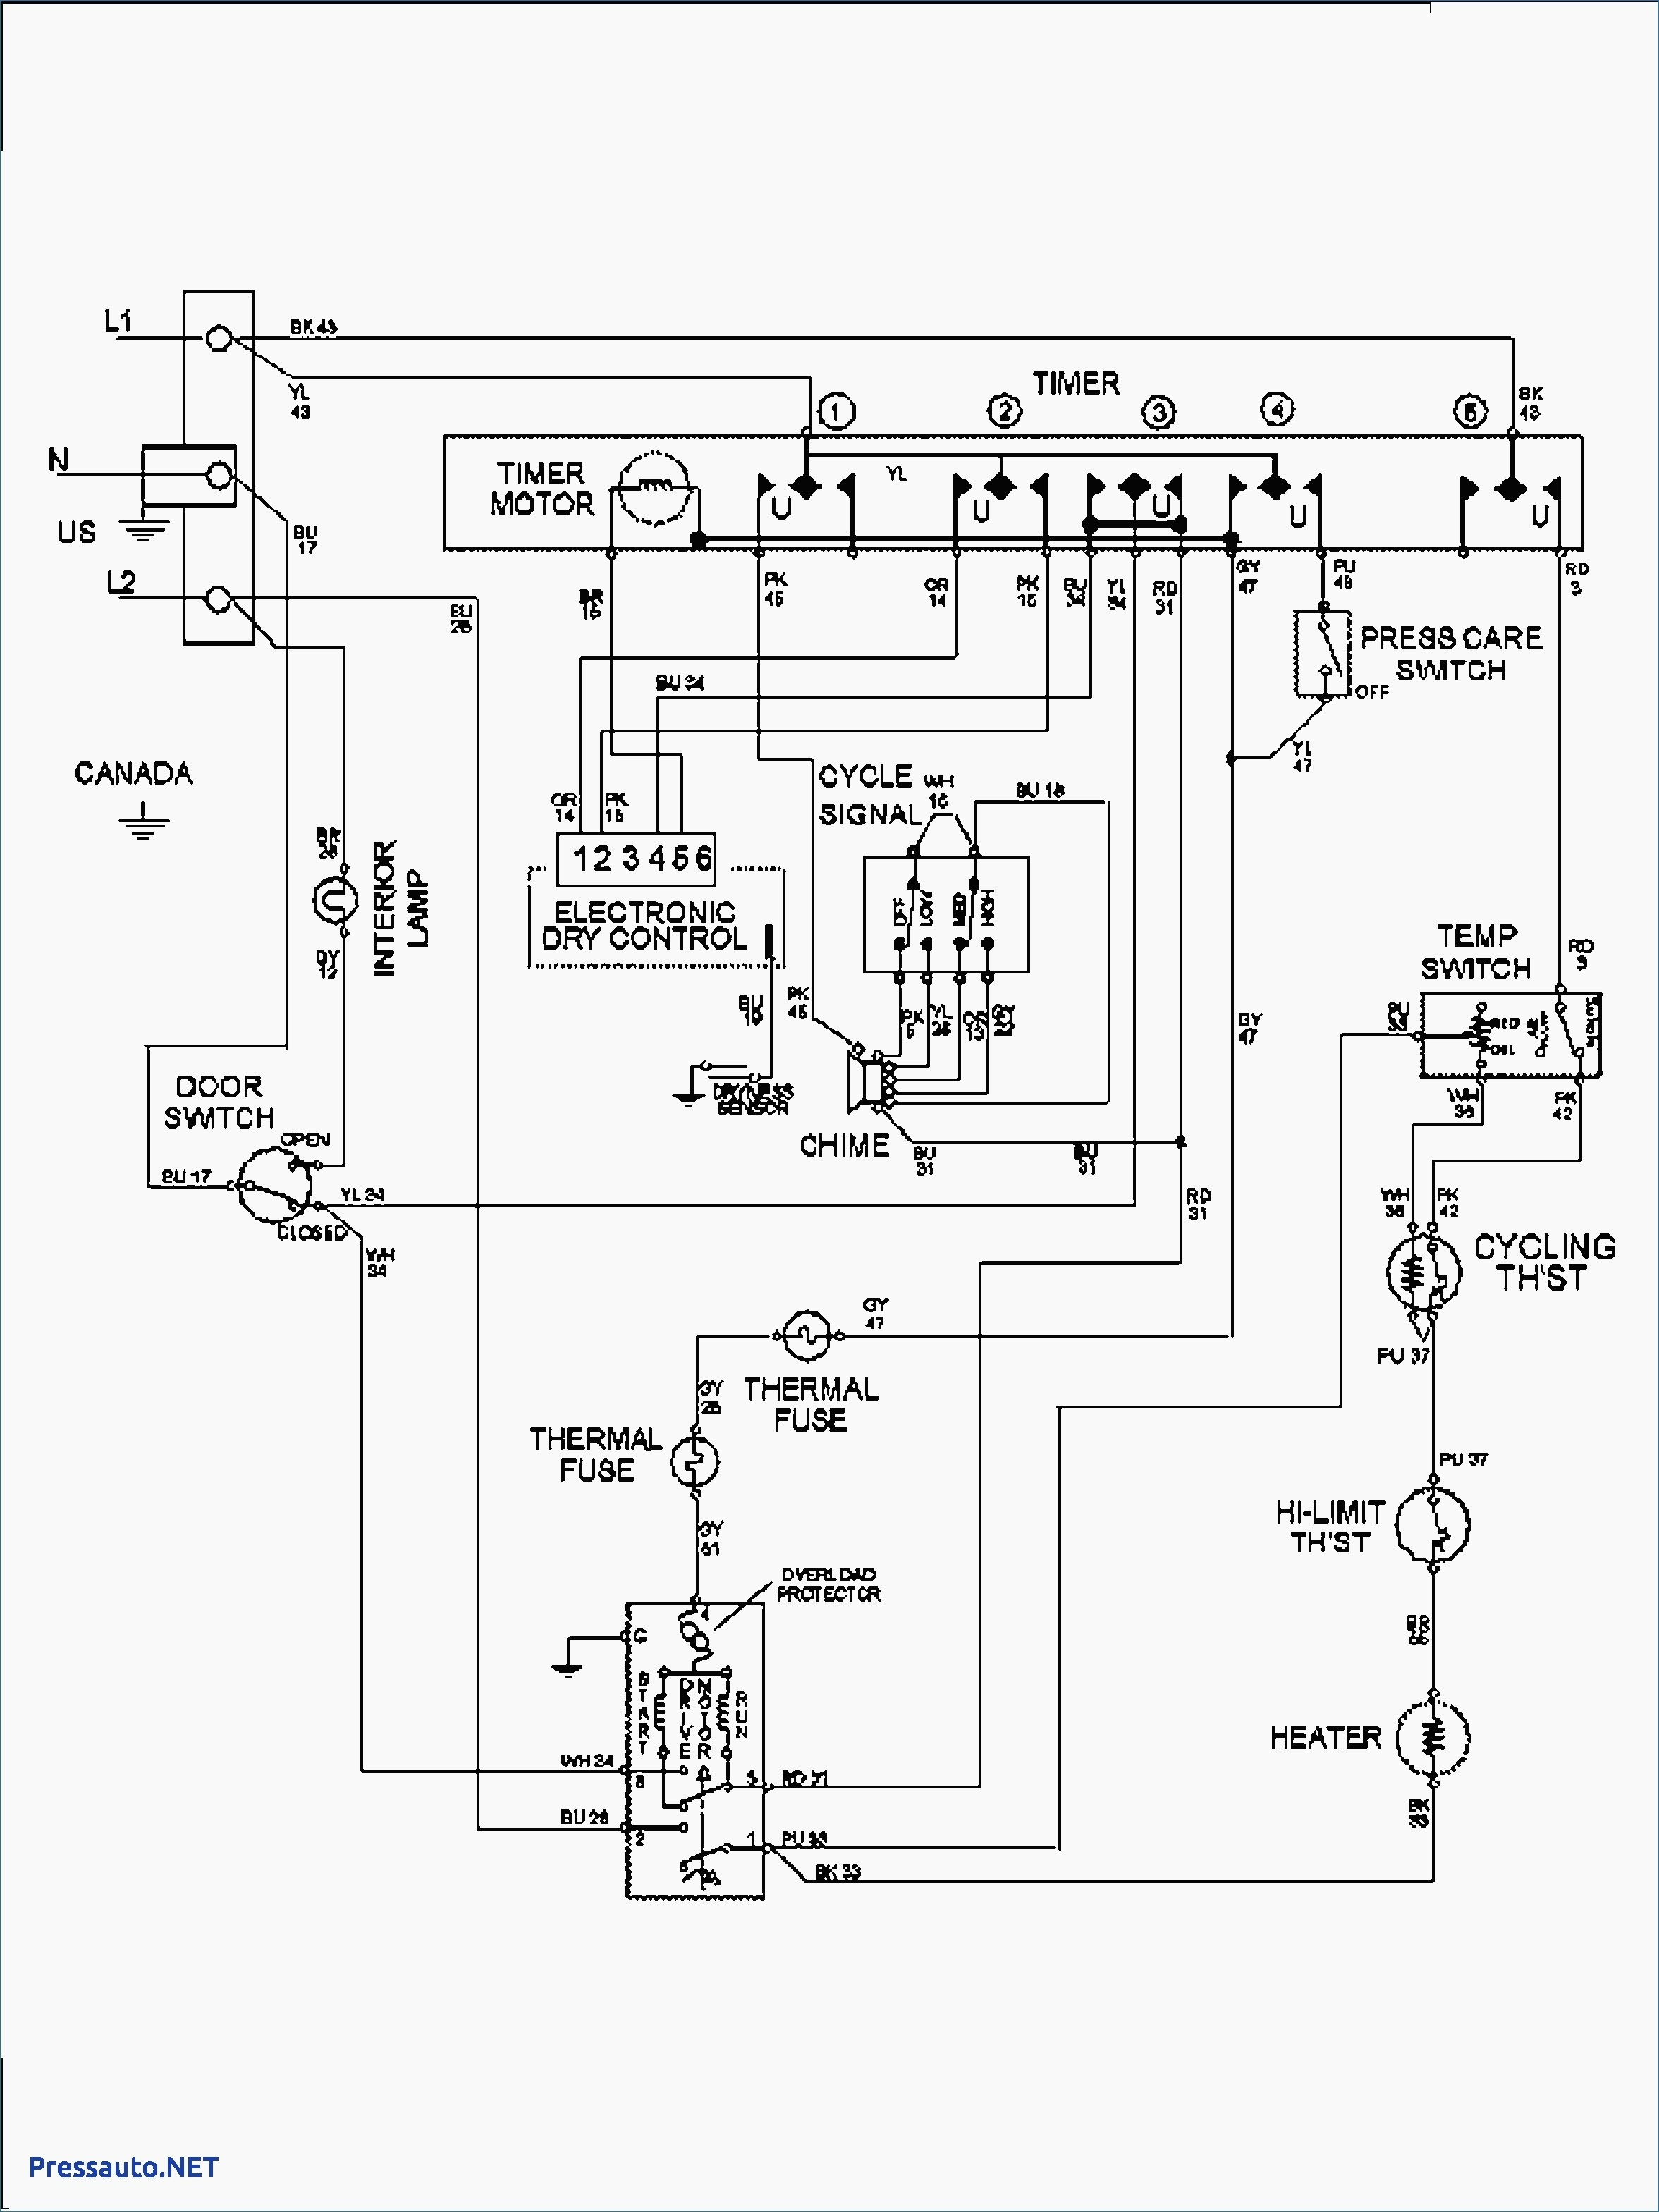 whirlpool duet sport dryer wiring diagram